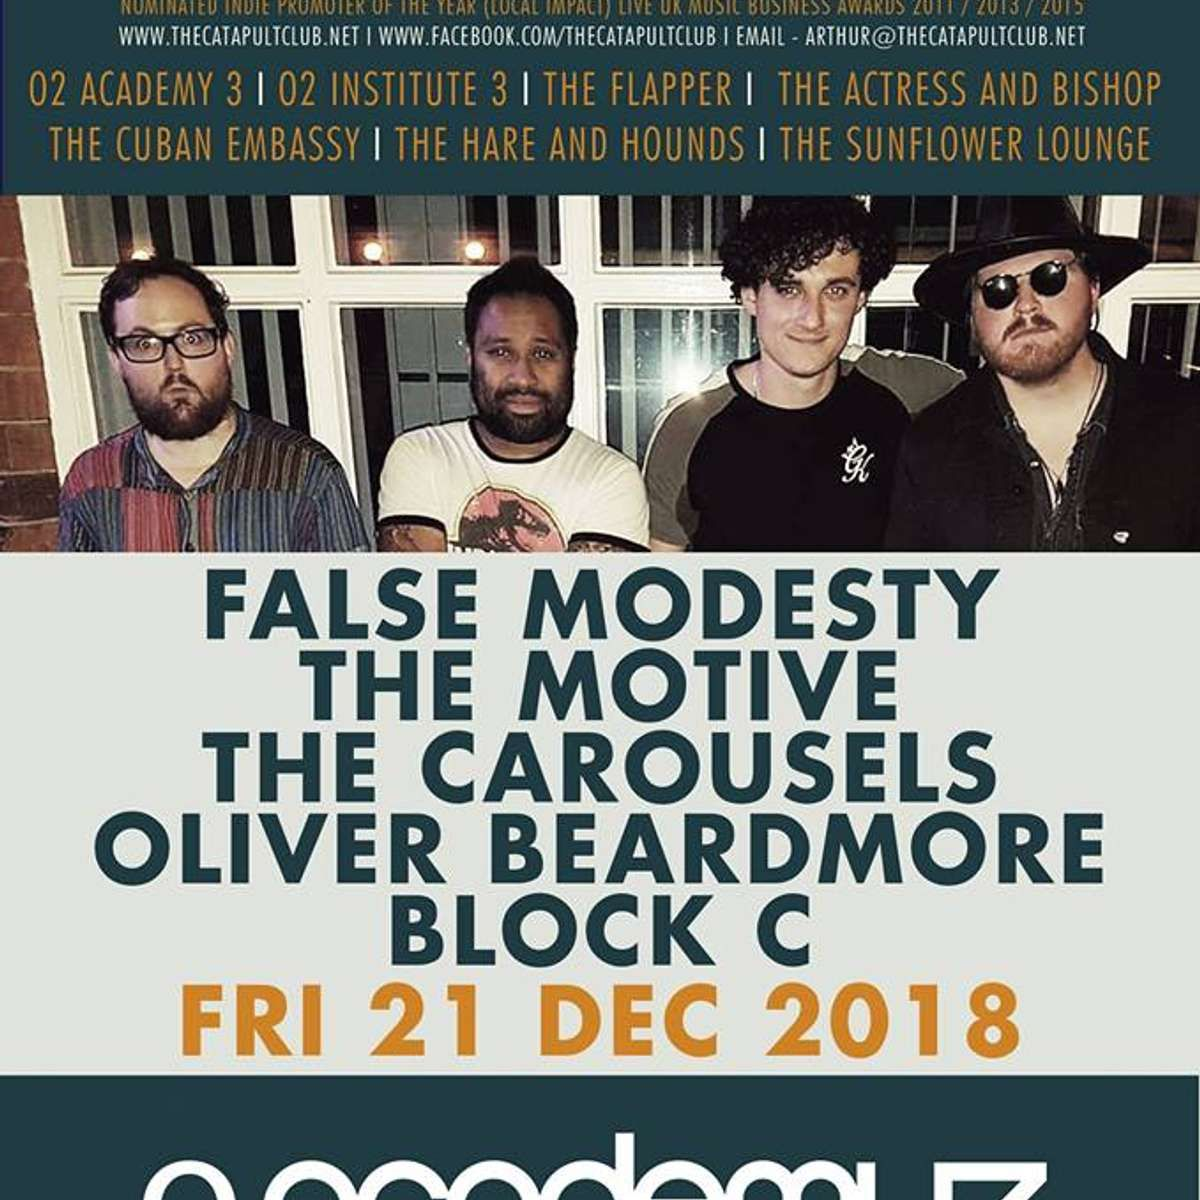 The Catapult Club Presents: False Modesty + Special Guests at O2